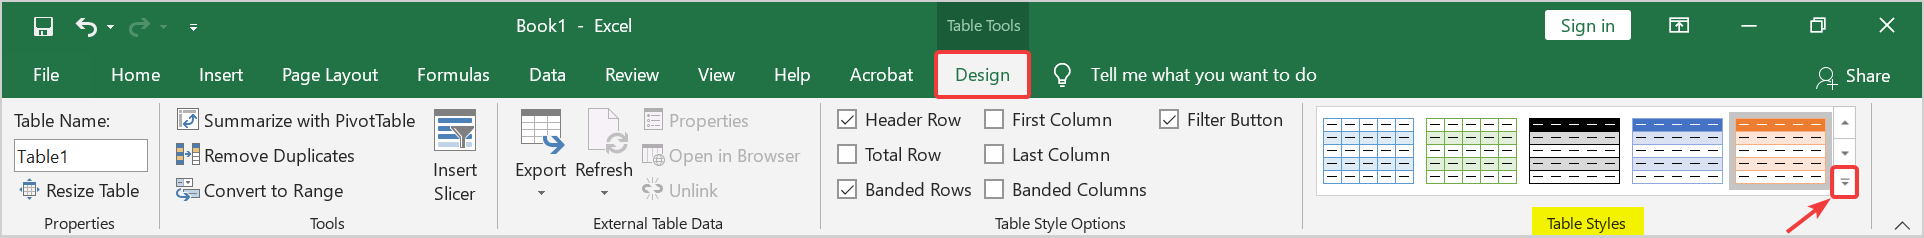 More Drop down arrow in table styles